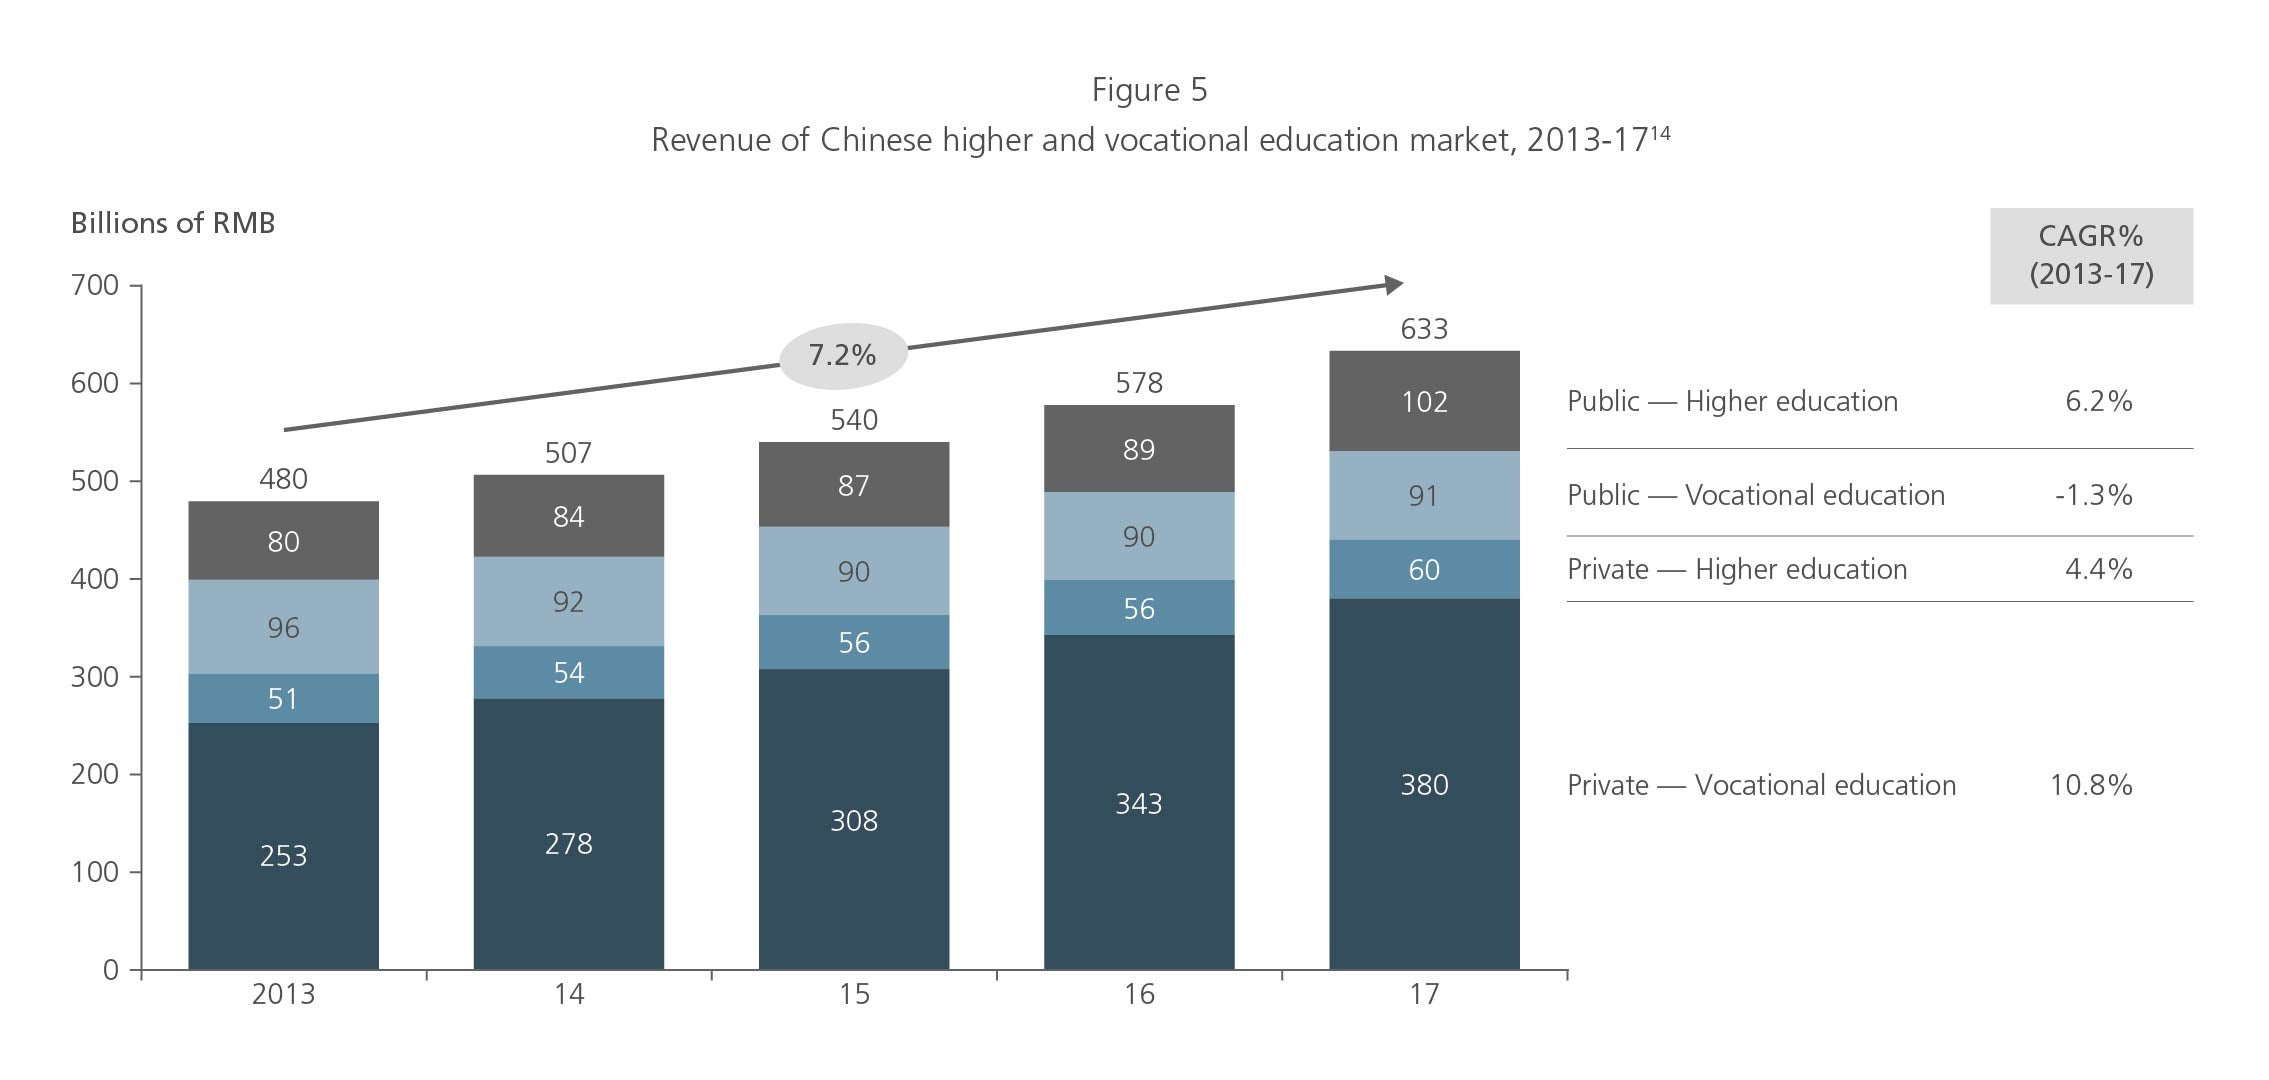 Revenue of Chinese higher and vocational education market 2013-17